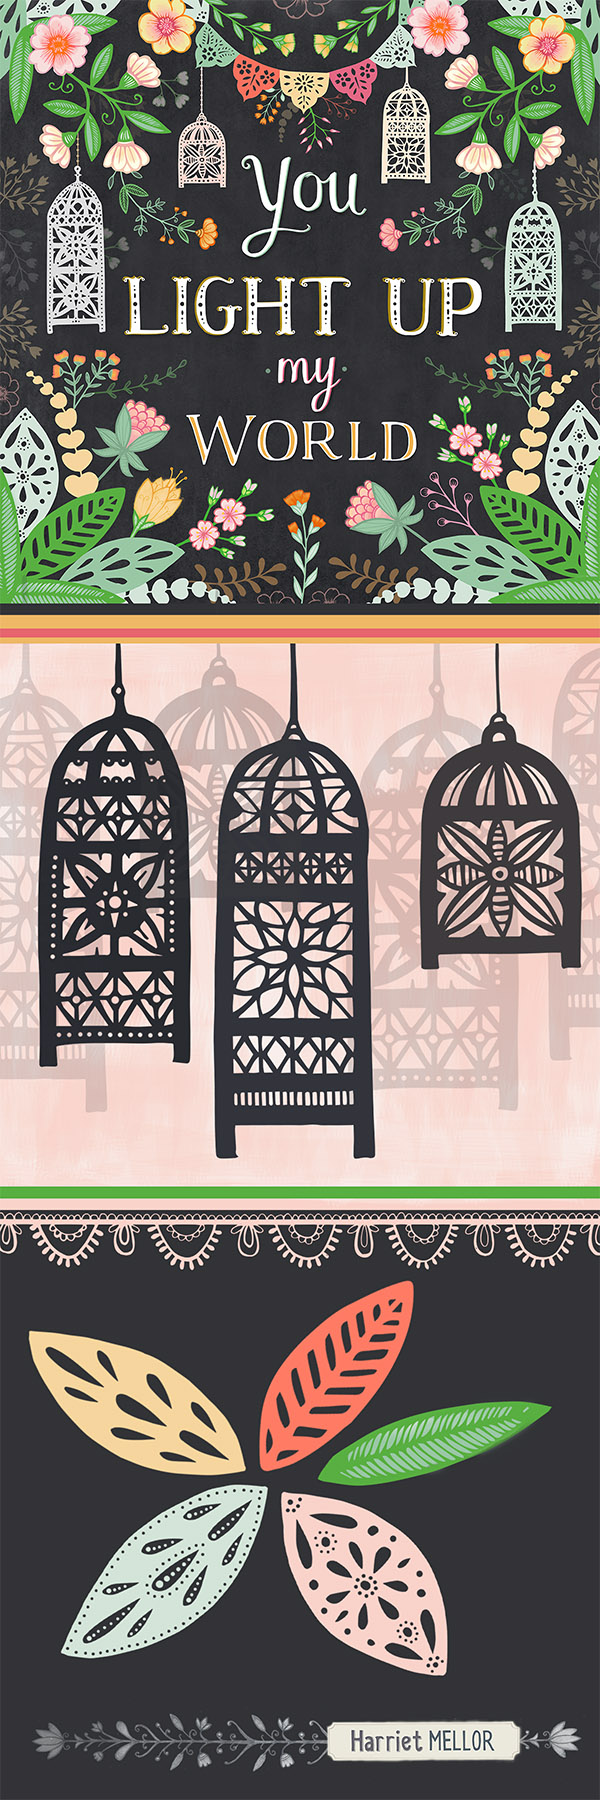 Harriet Mellor Lanterns tall pin